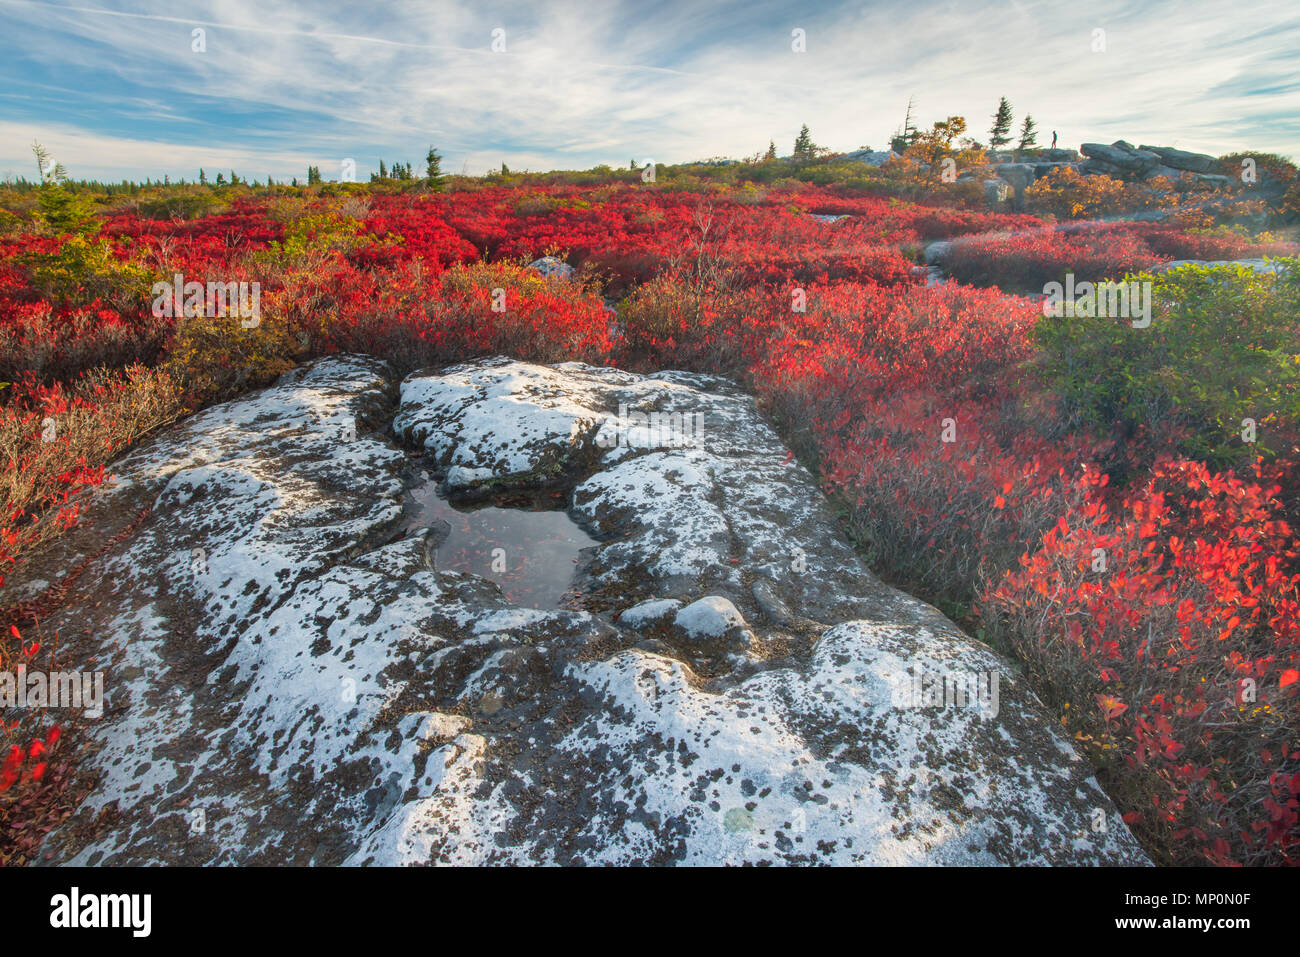 Autumn morning on Dolly Sods West Virginia - Stock Image